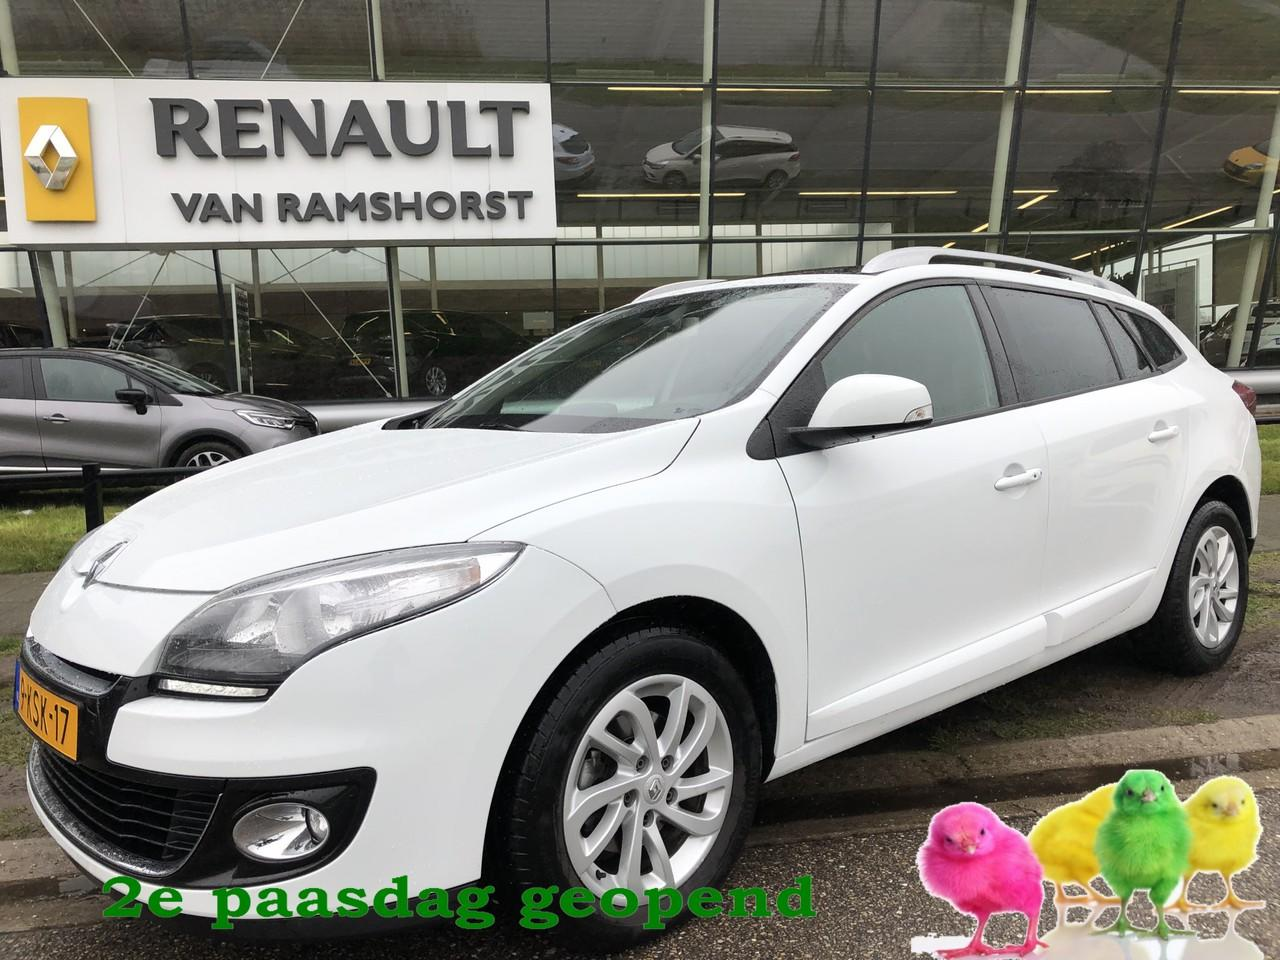 Renault Mégane Estate 1.5 dci 110 pk collection pan dak pdc a tomtom 2e paasdag open 10.00 - 17.00 uur